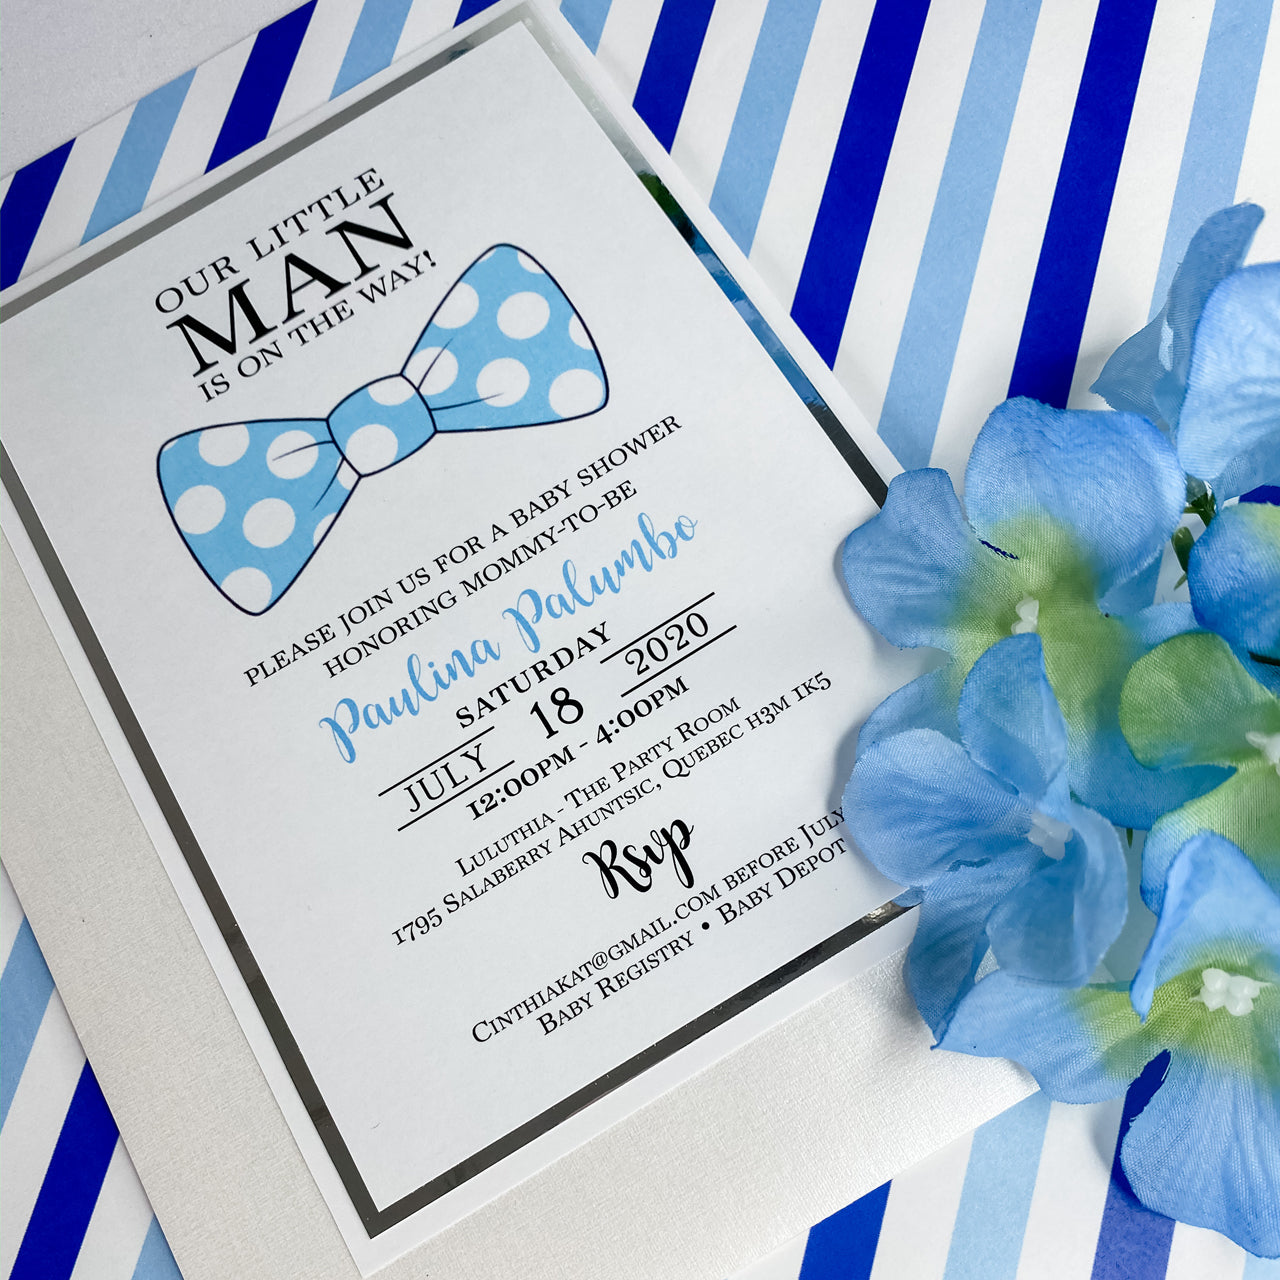 LITTLE MAN IS ON THE WAY BOWTIE INVITATION CARD